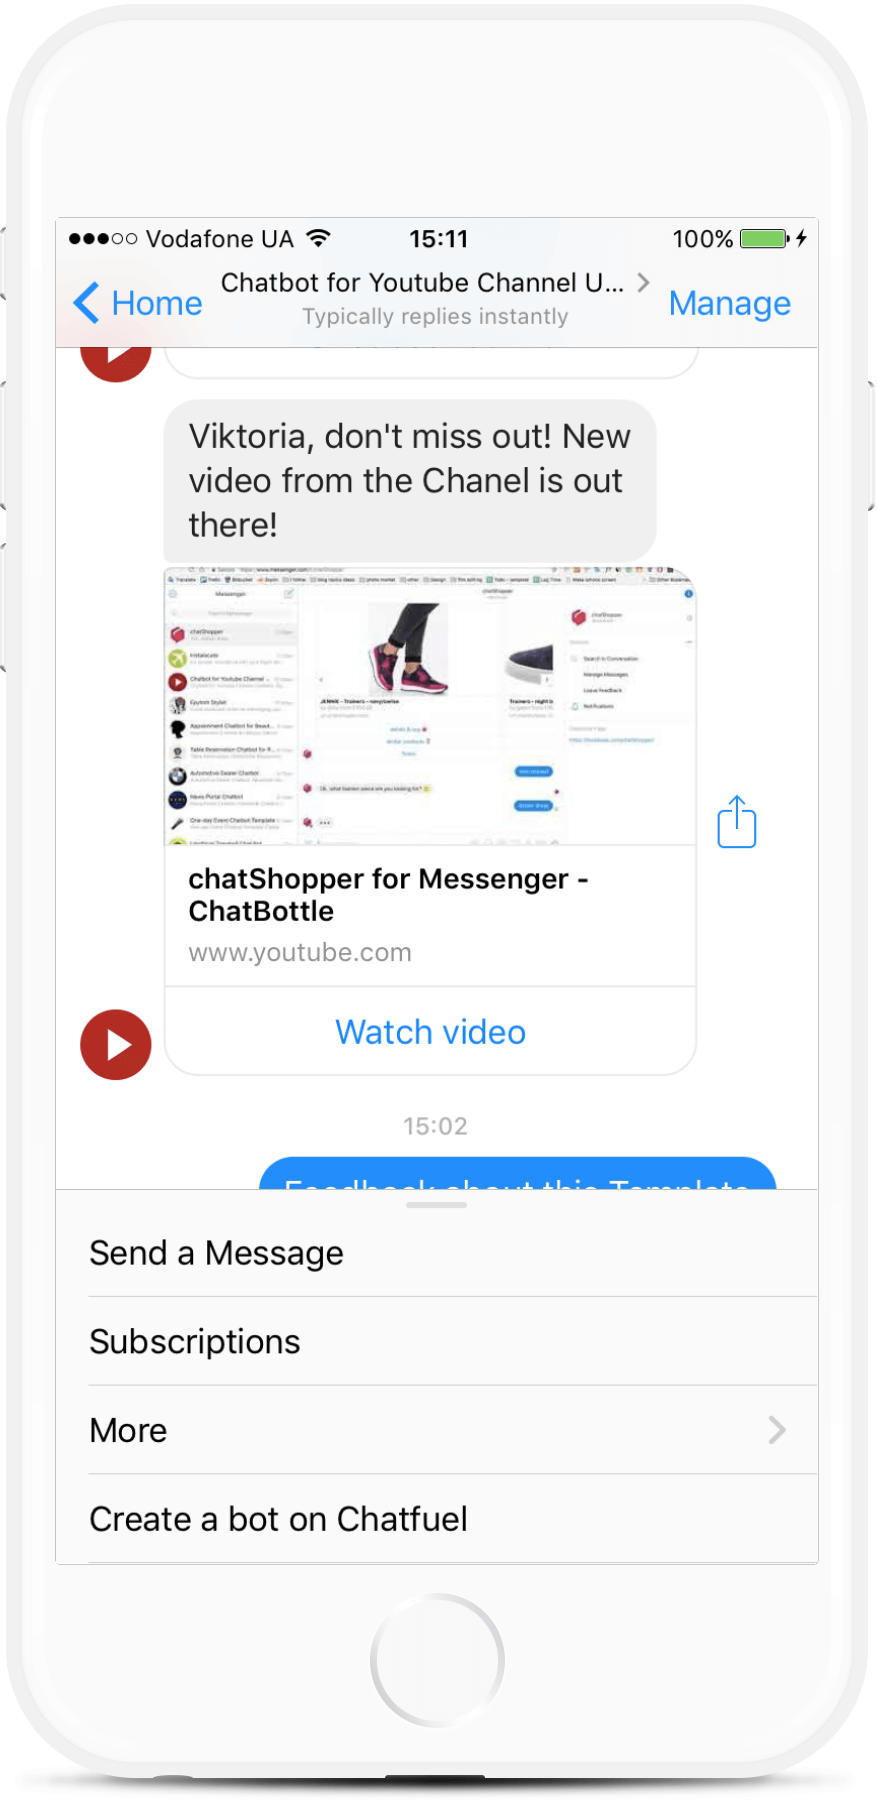 Facebook Messenger Chatbot for a YouTube Channel for $49